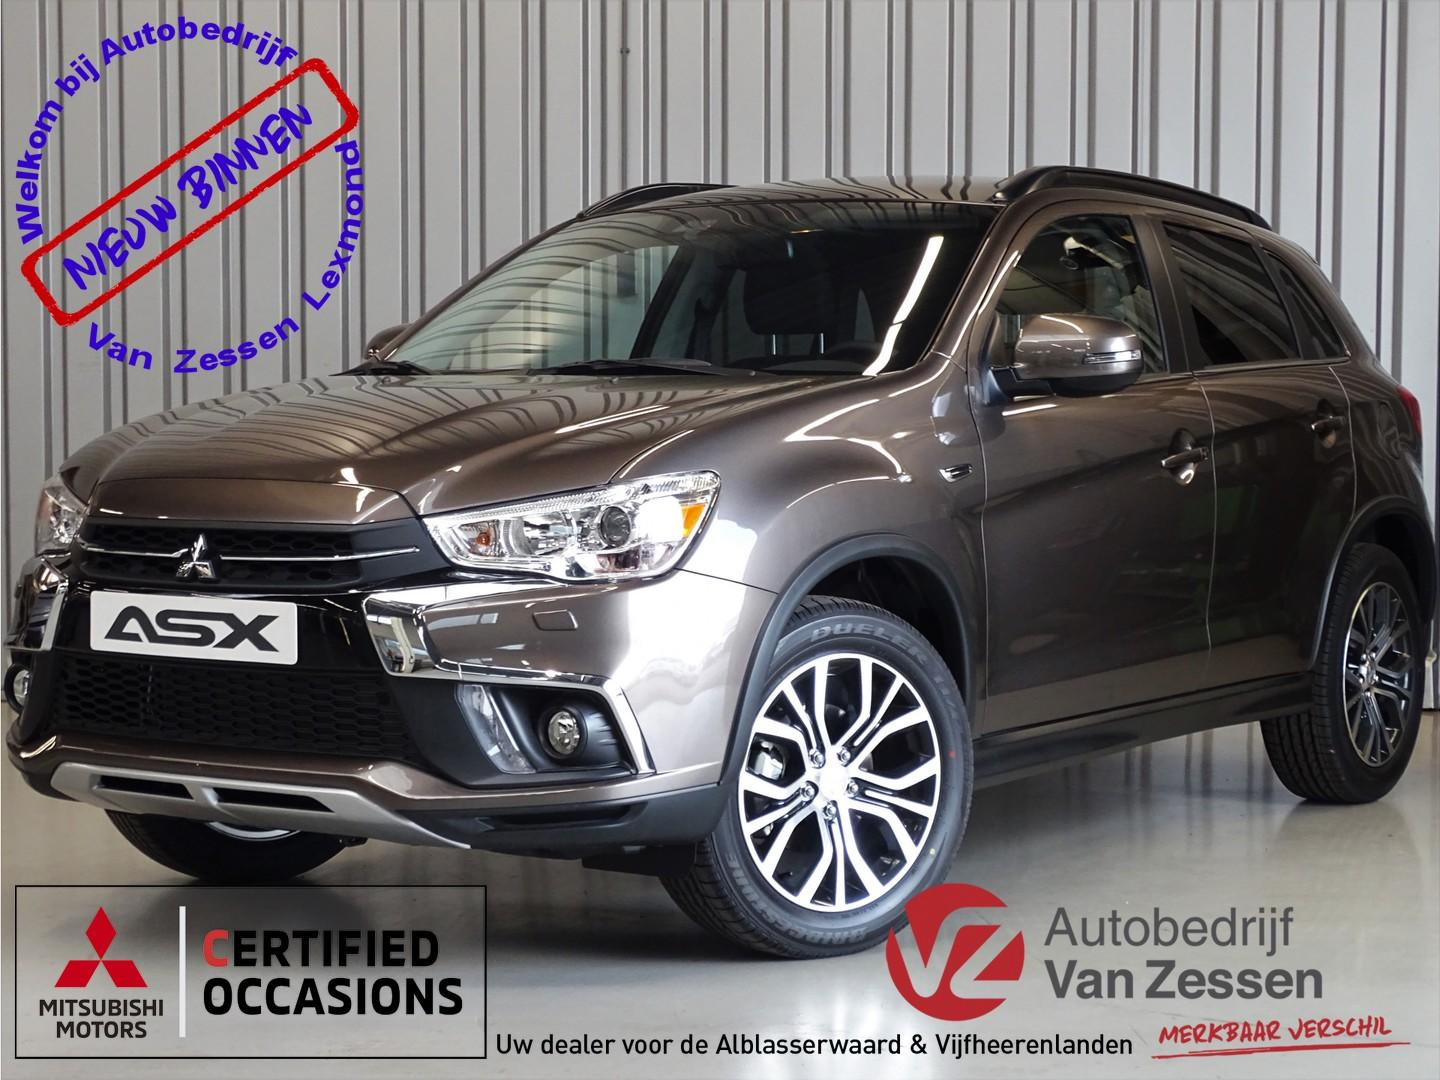 Mitsubishi Asx 1.6 cleartec instyle